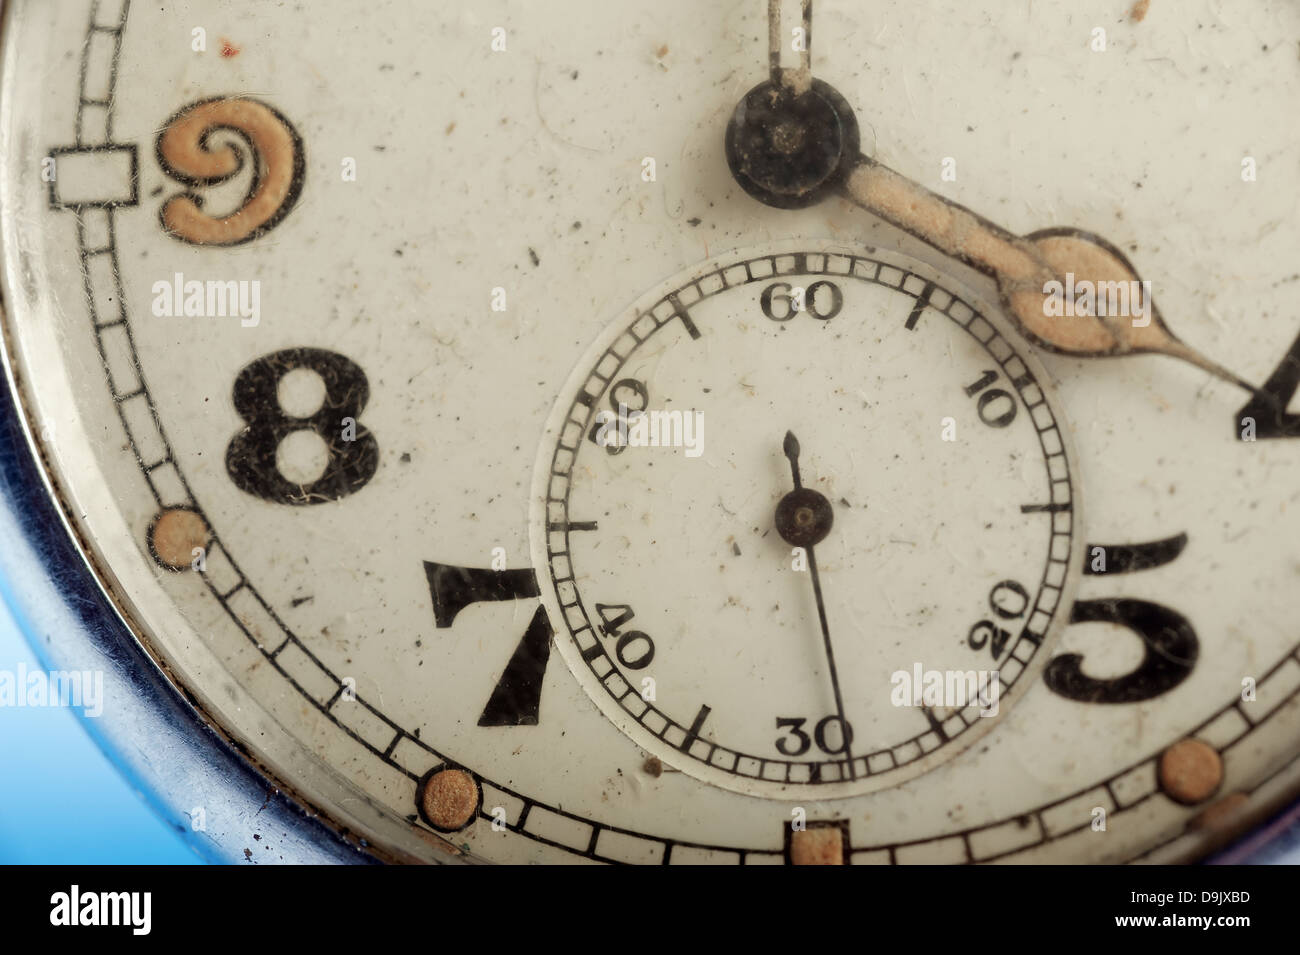 macro detail of shabby vintage pocket watch face - time concept - Stock Image